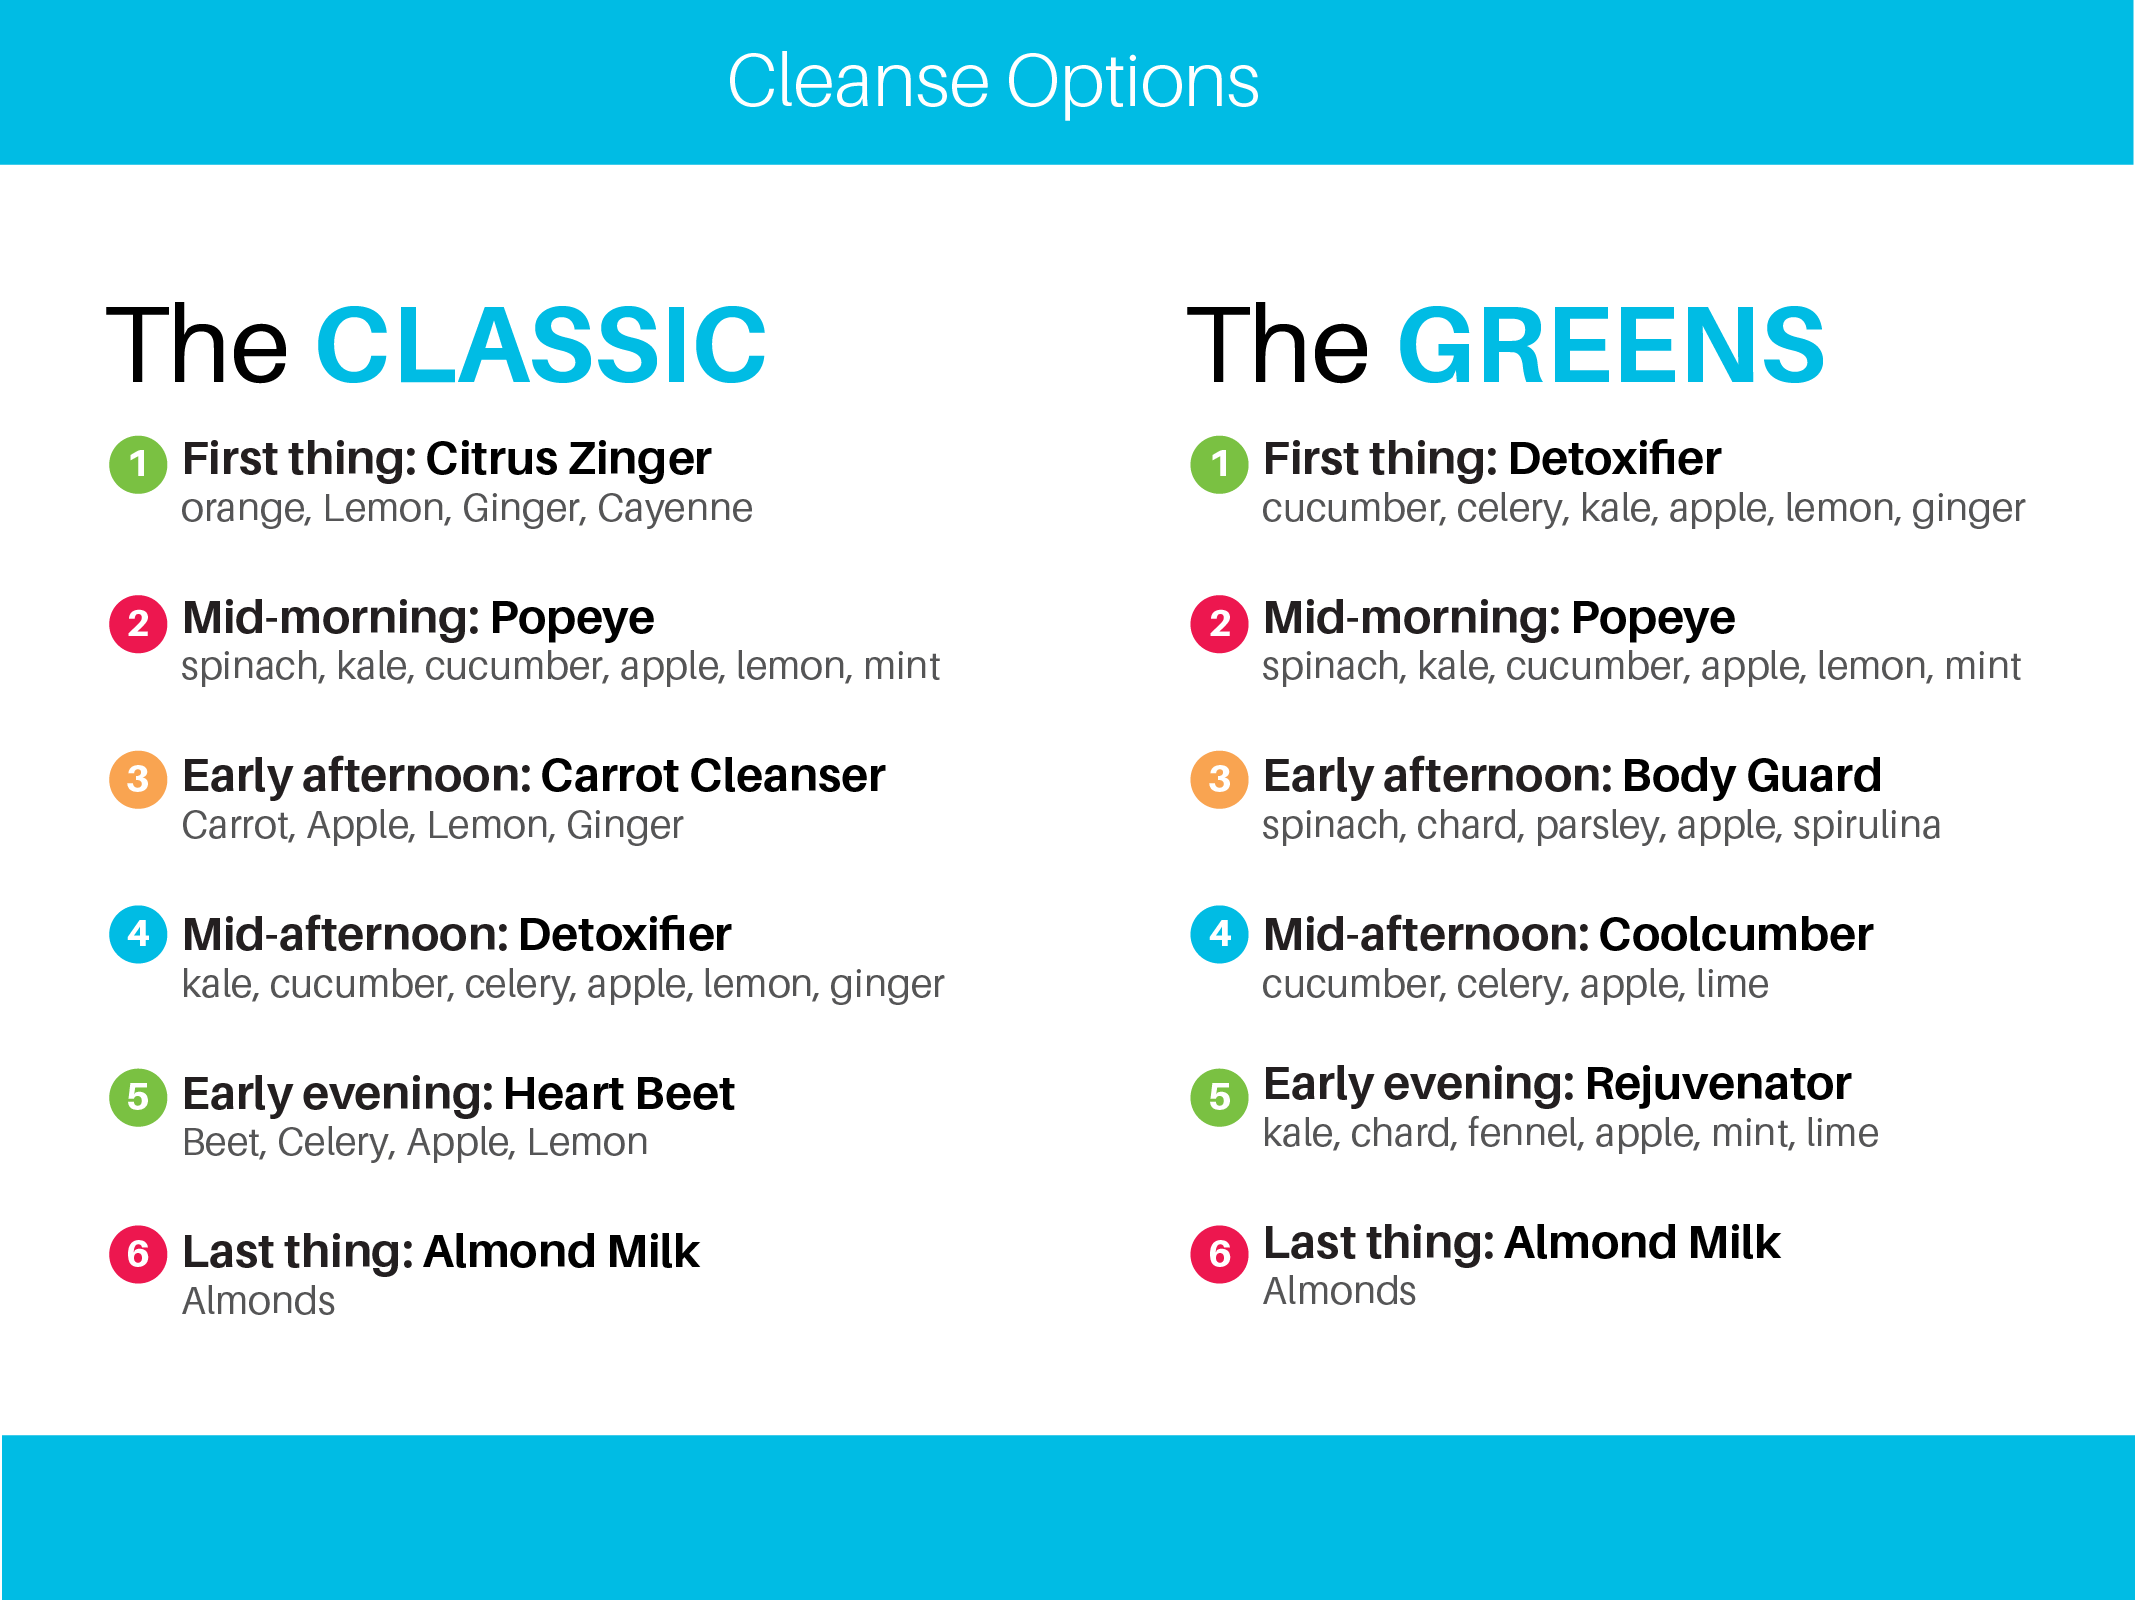 cleanseoptions-10-17-.png